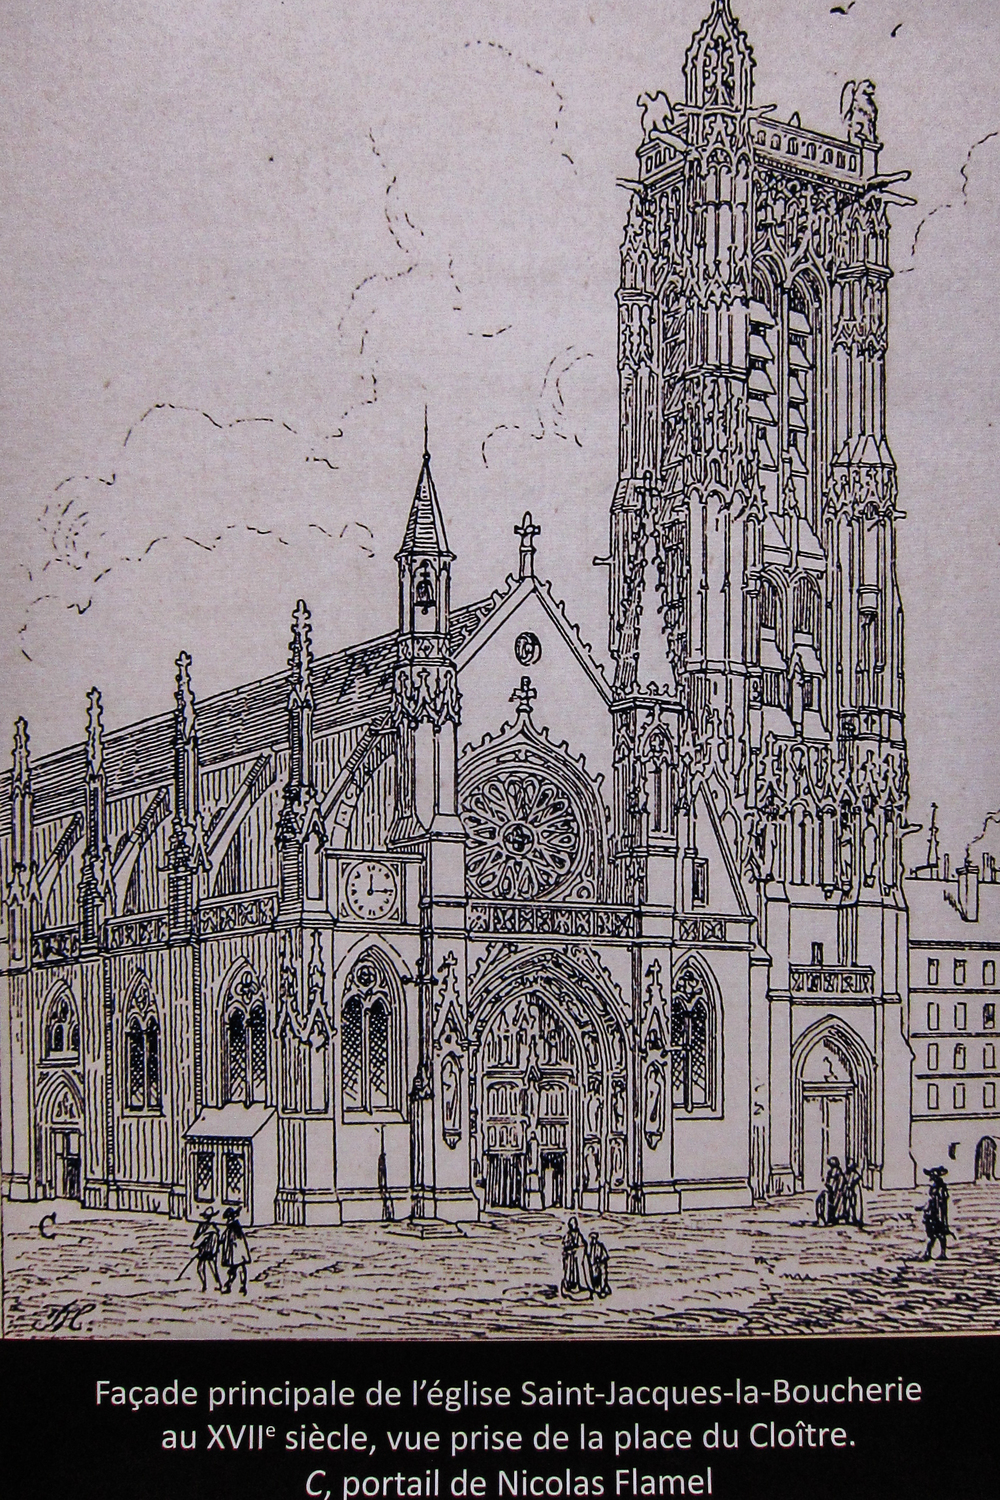 "This was a drawing we saw on the tour to illustrate the church that the tower once accompanied. Translation: ""Principal facade of the Church of Saint-Jacques-la-Boucherie from the 17th century, view taken from the place of the Cloister."""